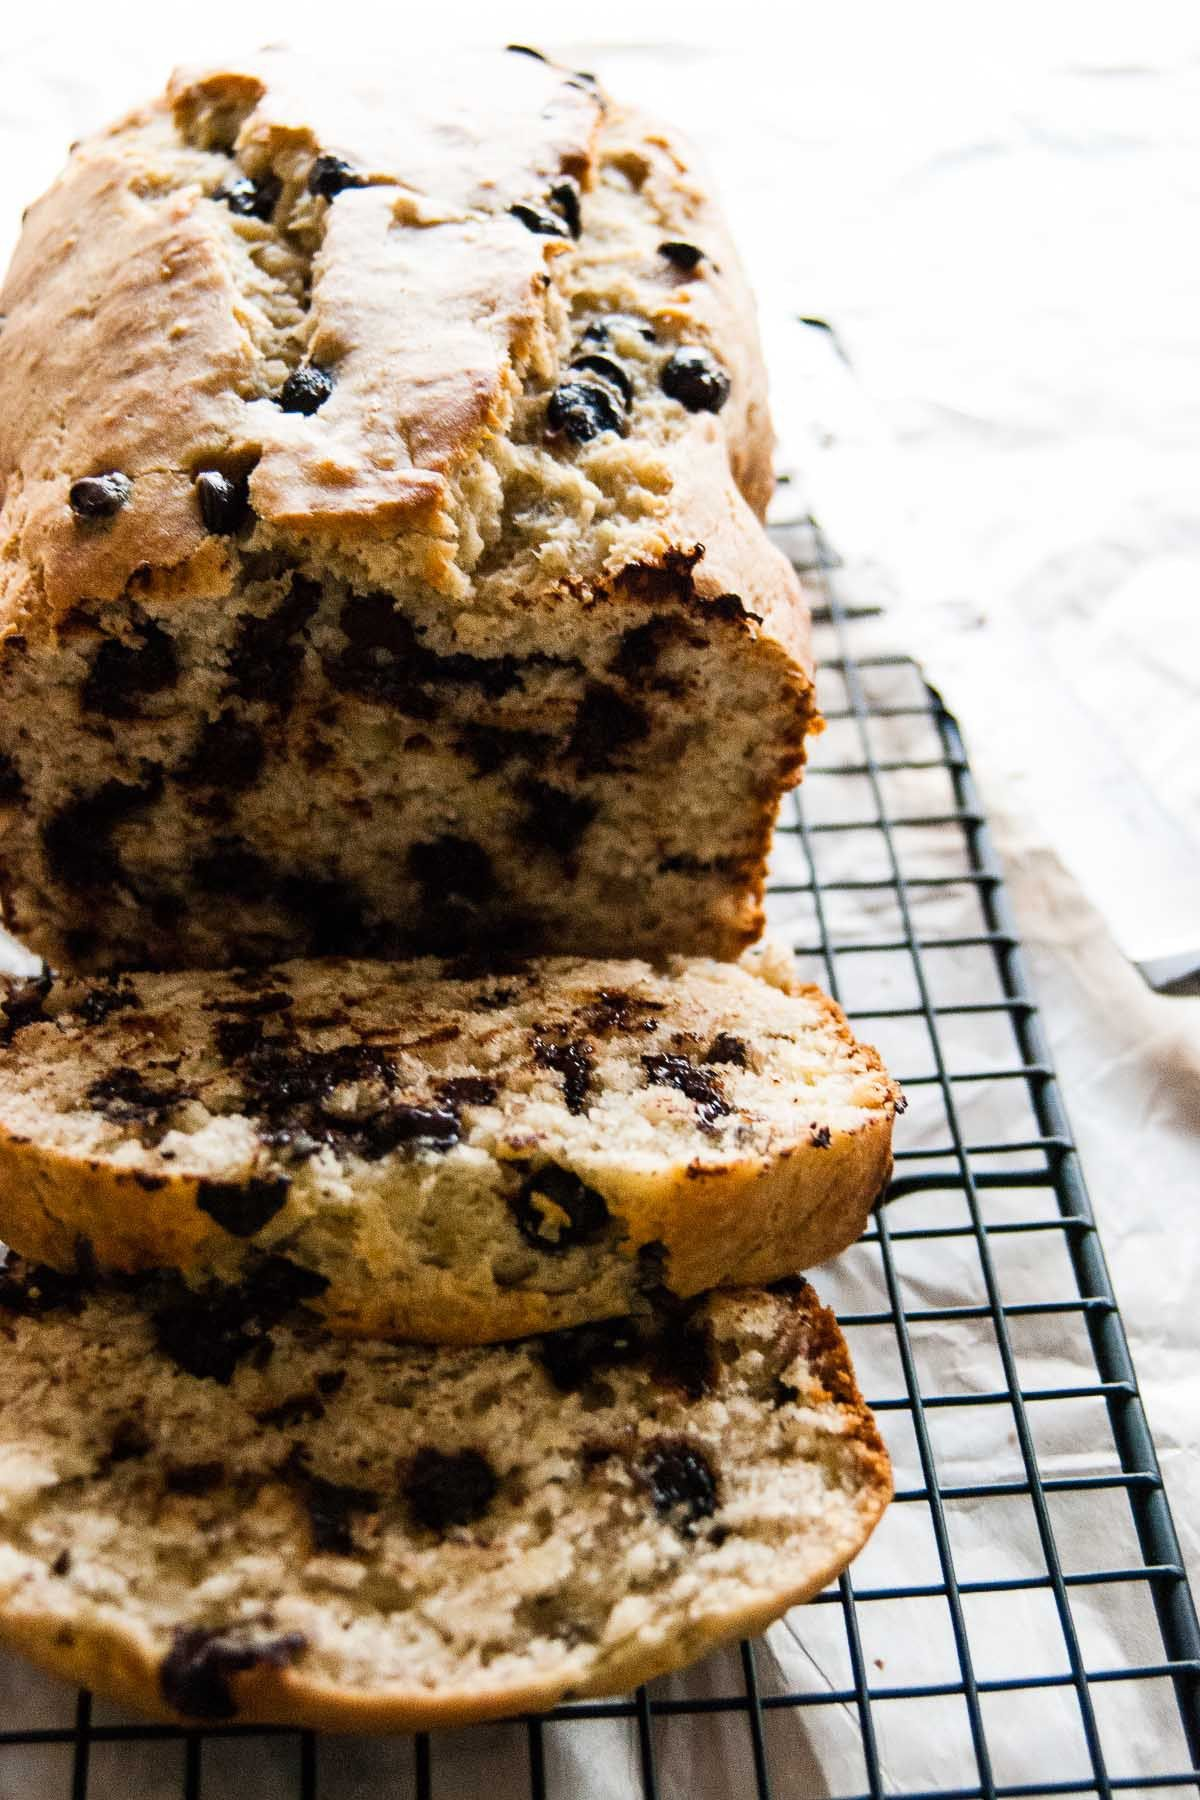 Chocolate Chip Buttermilk Banana Bread Recipe Buttermilk Banana Bread Banana Bread Recipes Banana Chocolate Chip